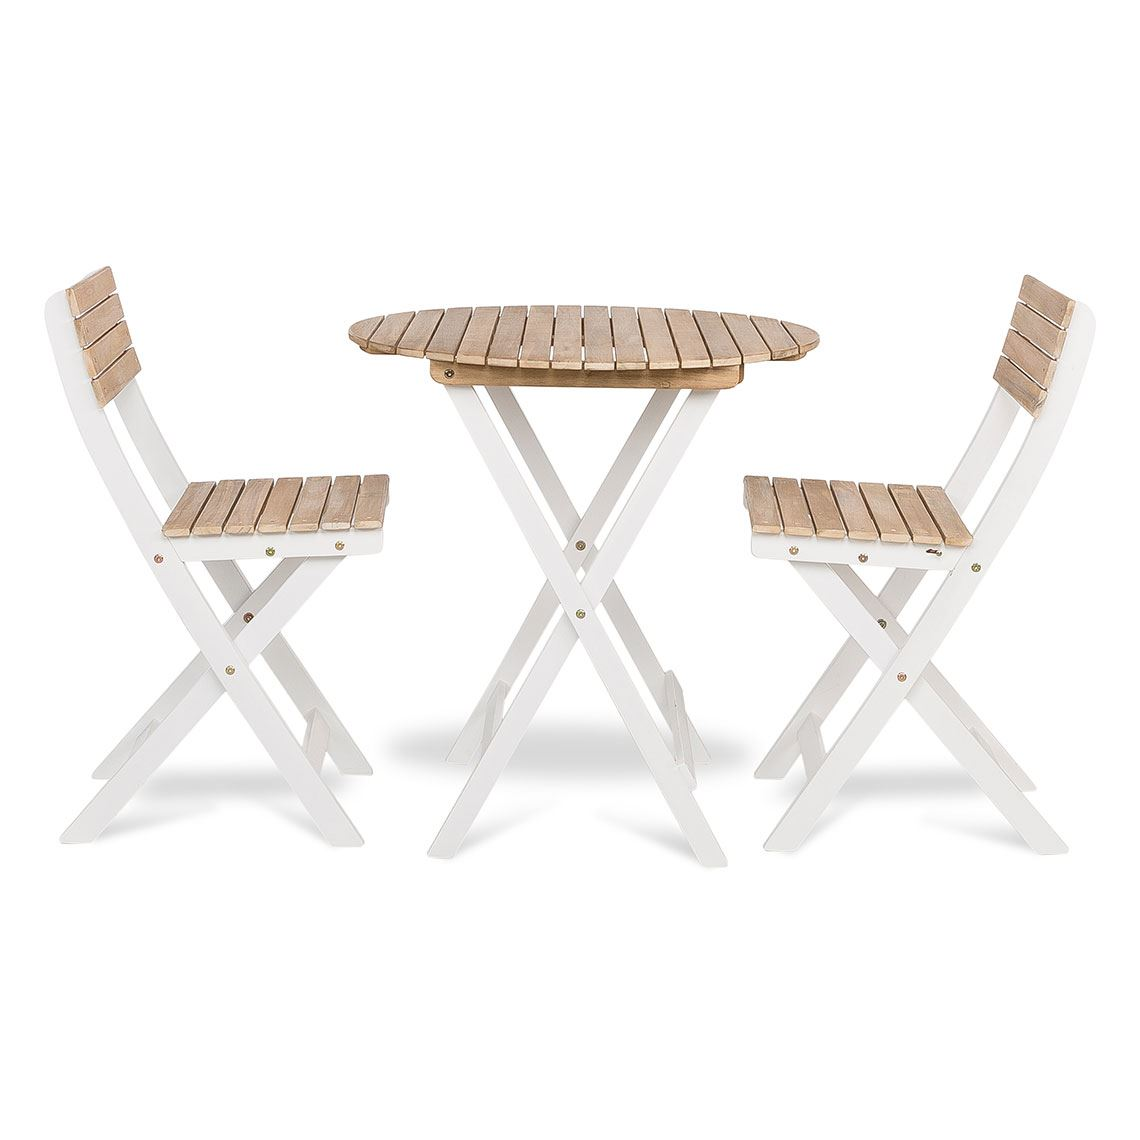 Atlantic 3 Piece Outdoor Dining Set, Acacia Wood Size W 146cm x D 156cm x H 79cm in Nat/Wht Solid Acacia/Metal Freedom by Freedom, a Outdoor Dining Sets for sale on Style Sourcebook